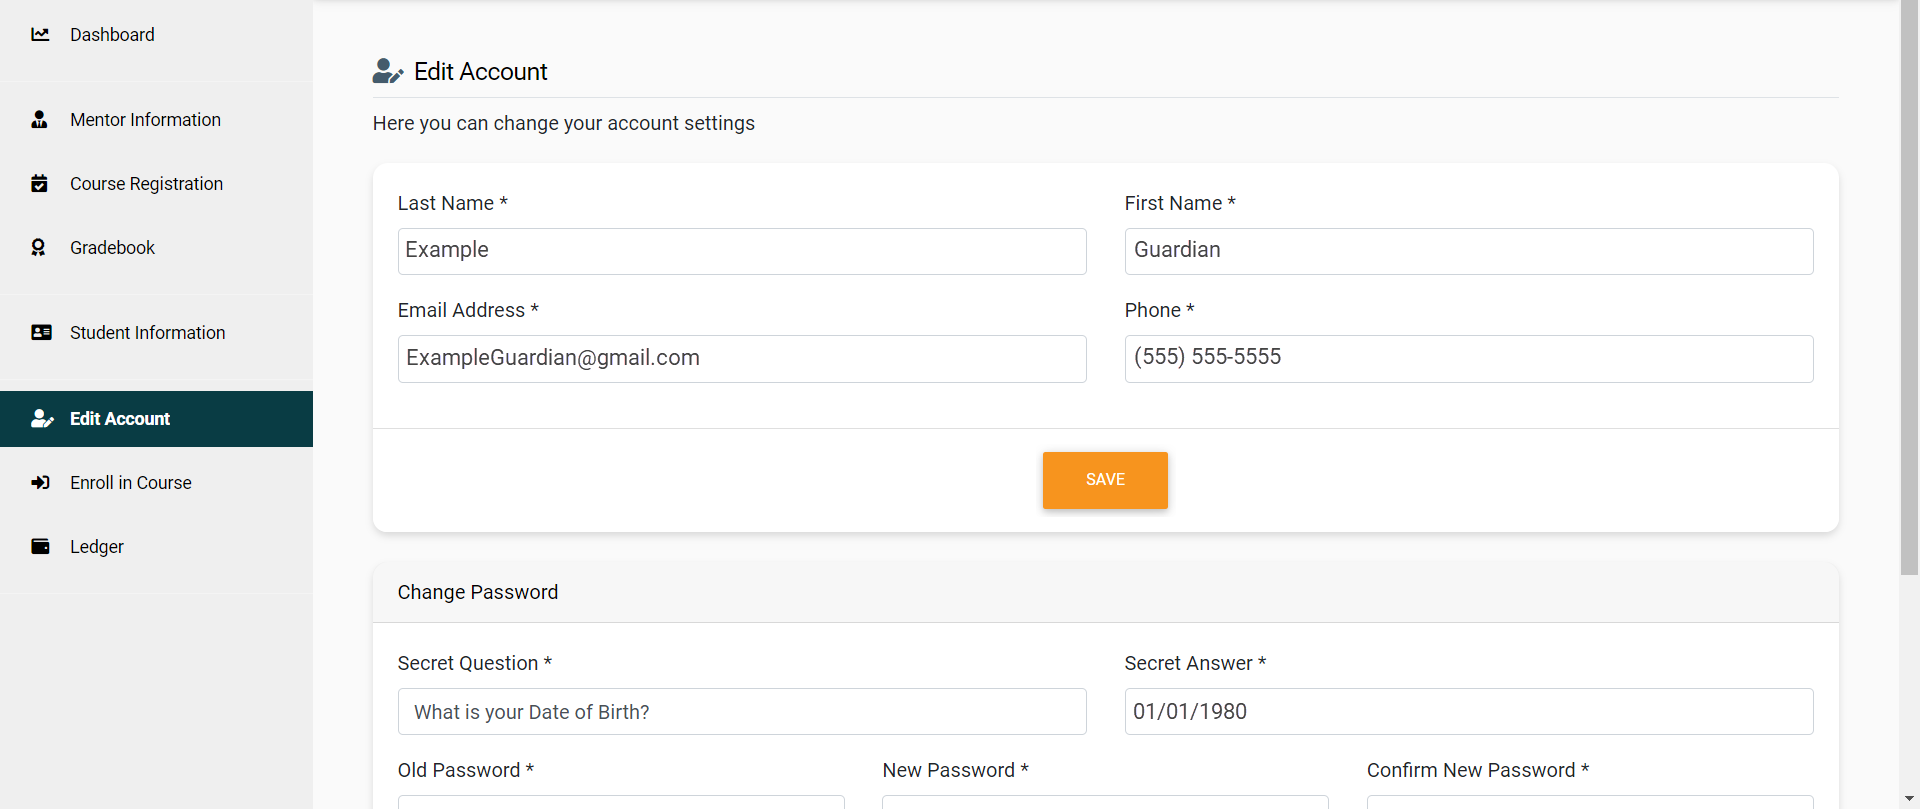 The Edit Account page is divided into two sections. The first includes Last Name, First Name, Email Address, Phone and Current Password. Below is a Save button which will apply changes to those fields. The second section is Old Password, Security Question, Secret Answer, New Password and Confirm Password. Below is a Save button that will apply changes made to those fields. An arrow points to the second save button.